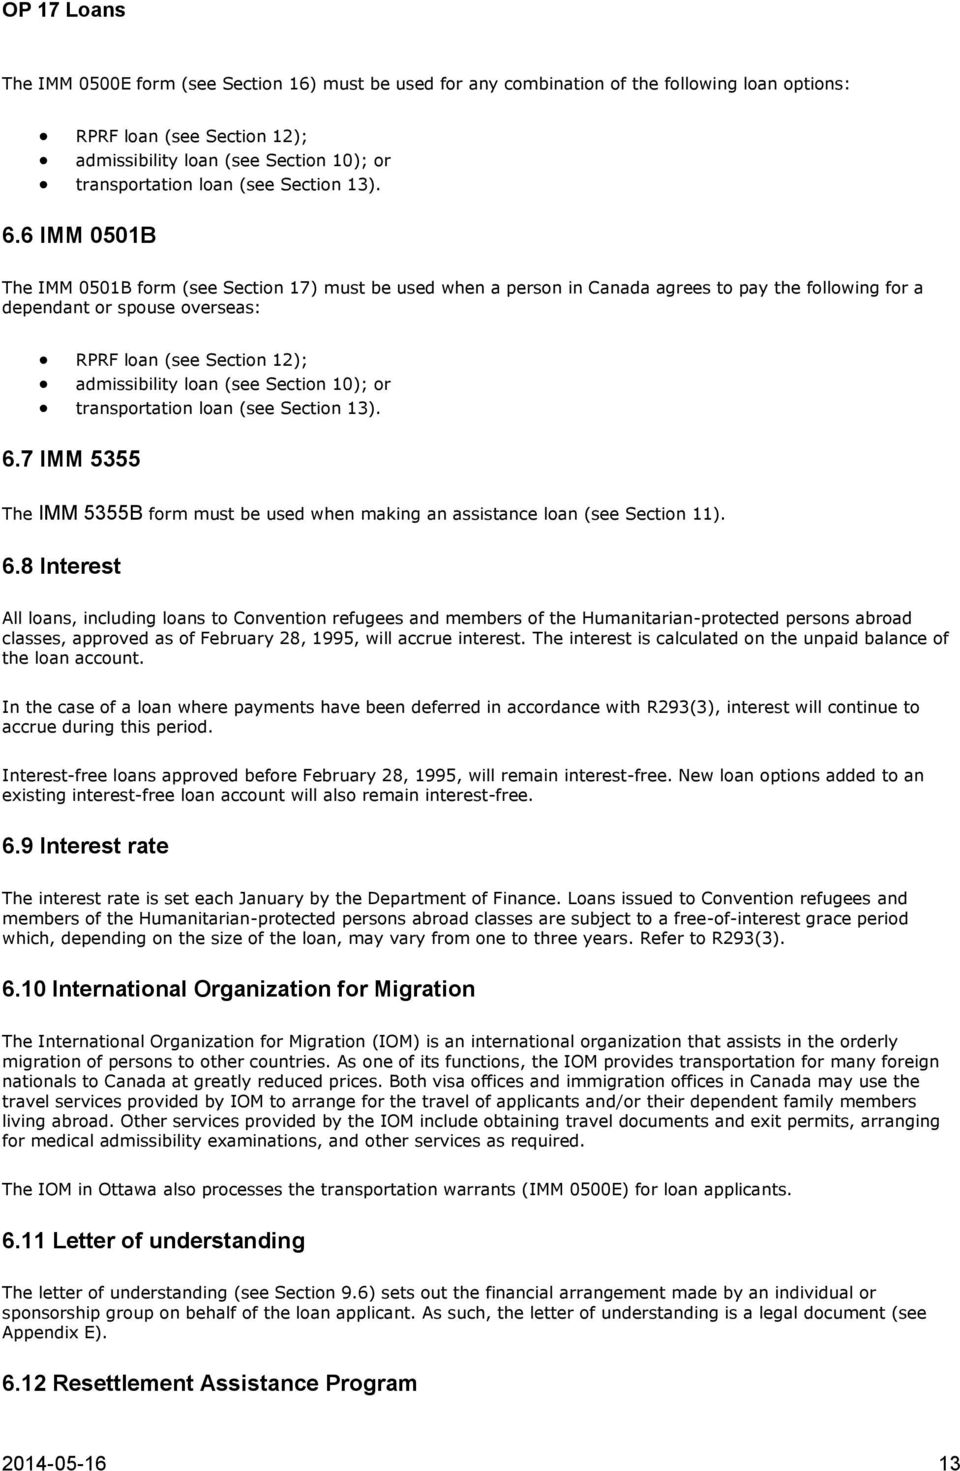 6 IMM 0501B The IMM 0501B form (see Section 17) must be used when a person in Canada agrees to pay the following for a dependant or spouse overseas: RPRF loan (see Section 12); admissibility loan